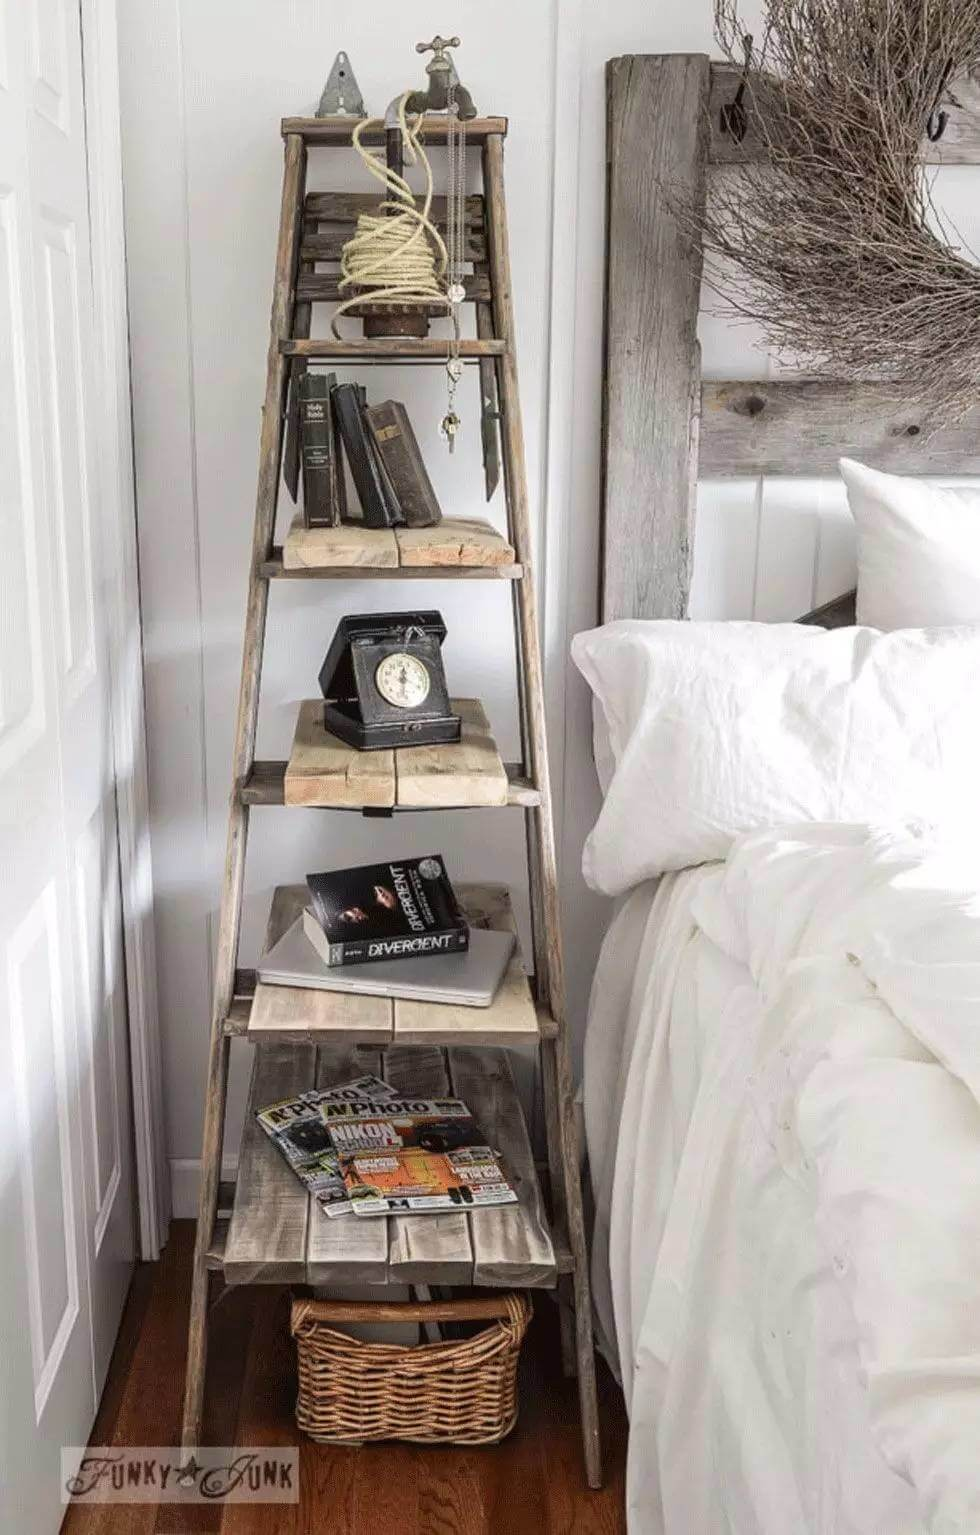 17 upcycled orchard ladder turned nightstand. Interior Design Ideas. Home Design Ideas